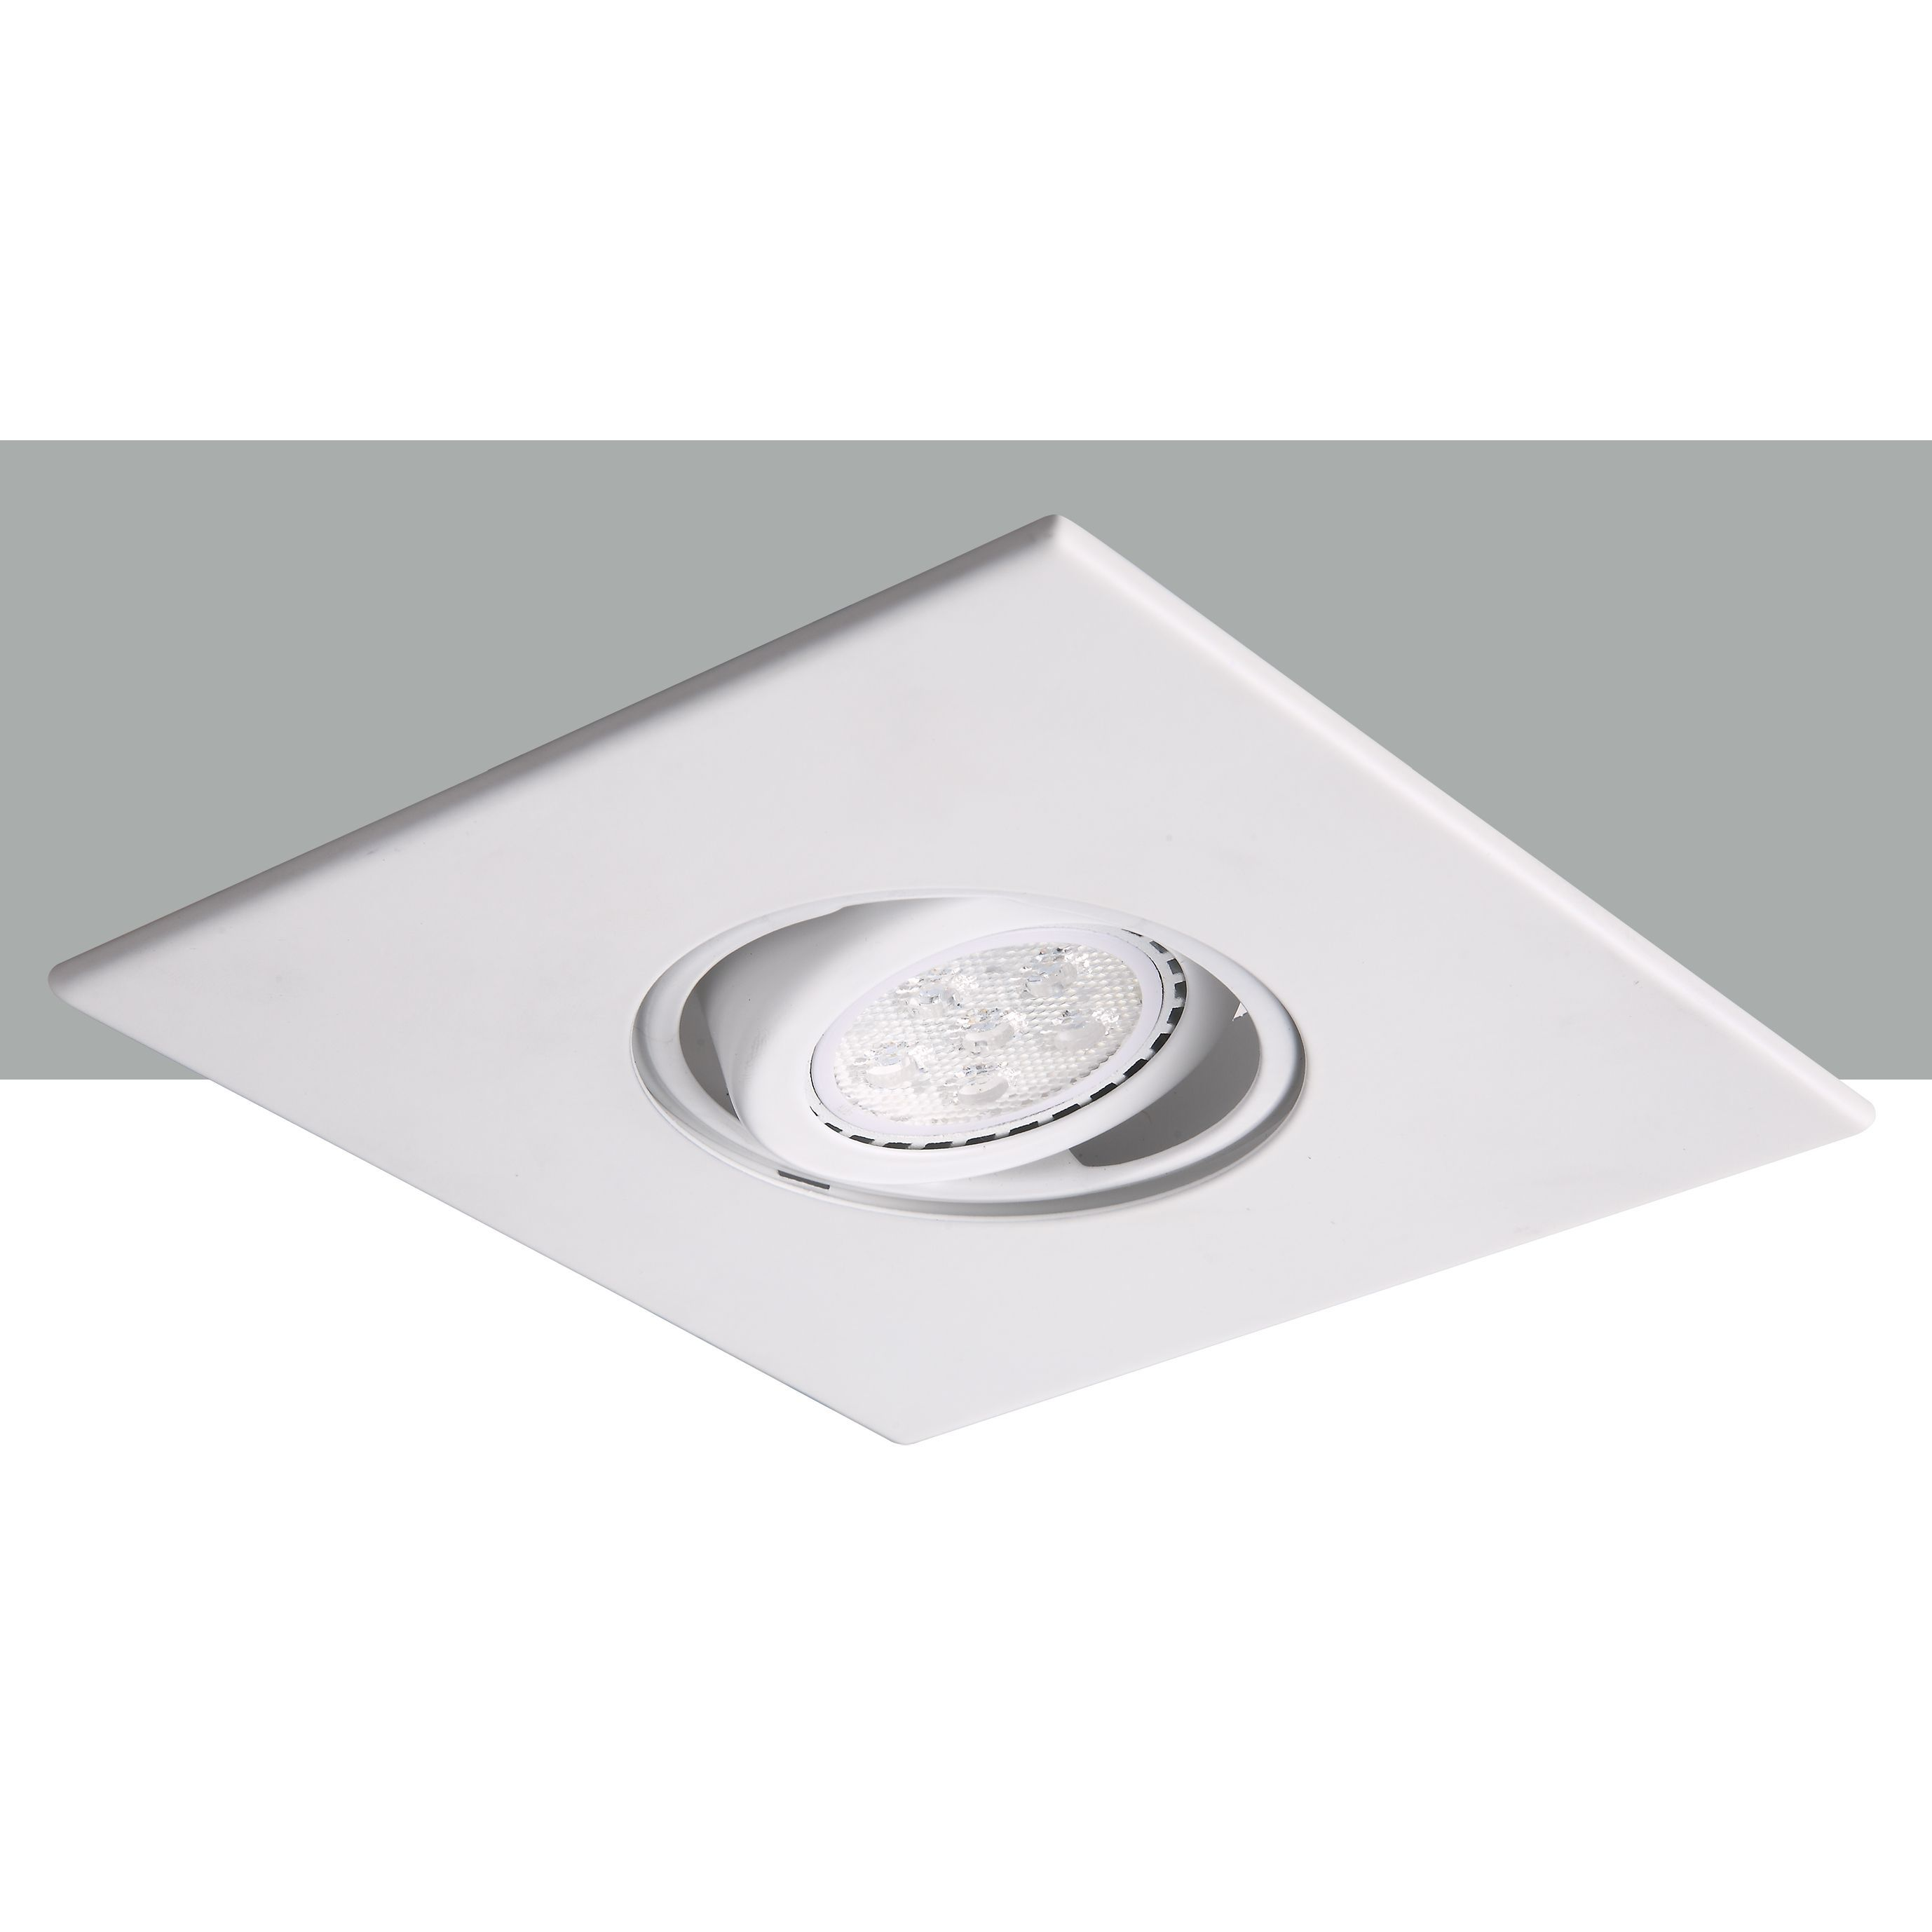 lighting r lights ceilings cover square ceiling light jesse photo